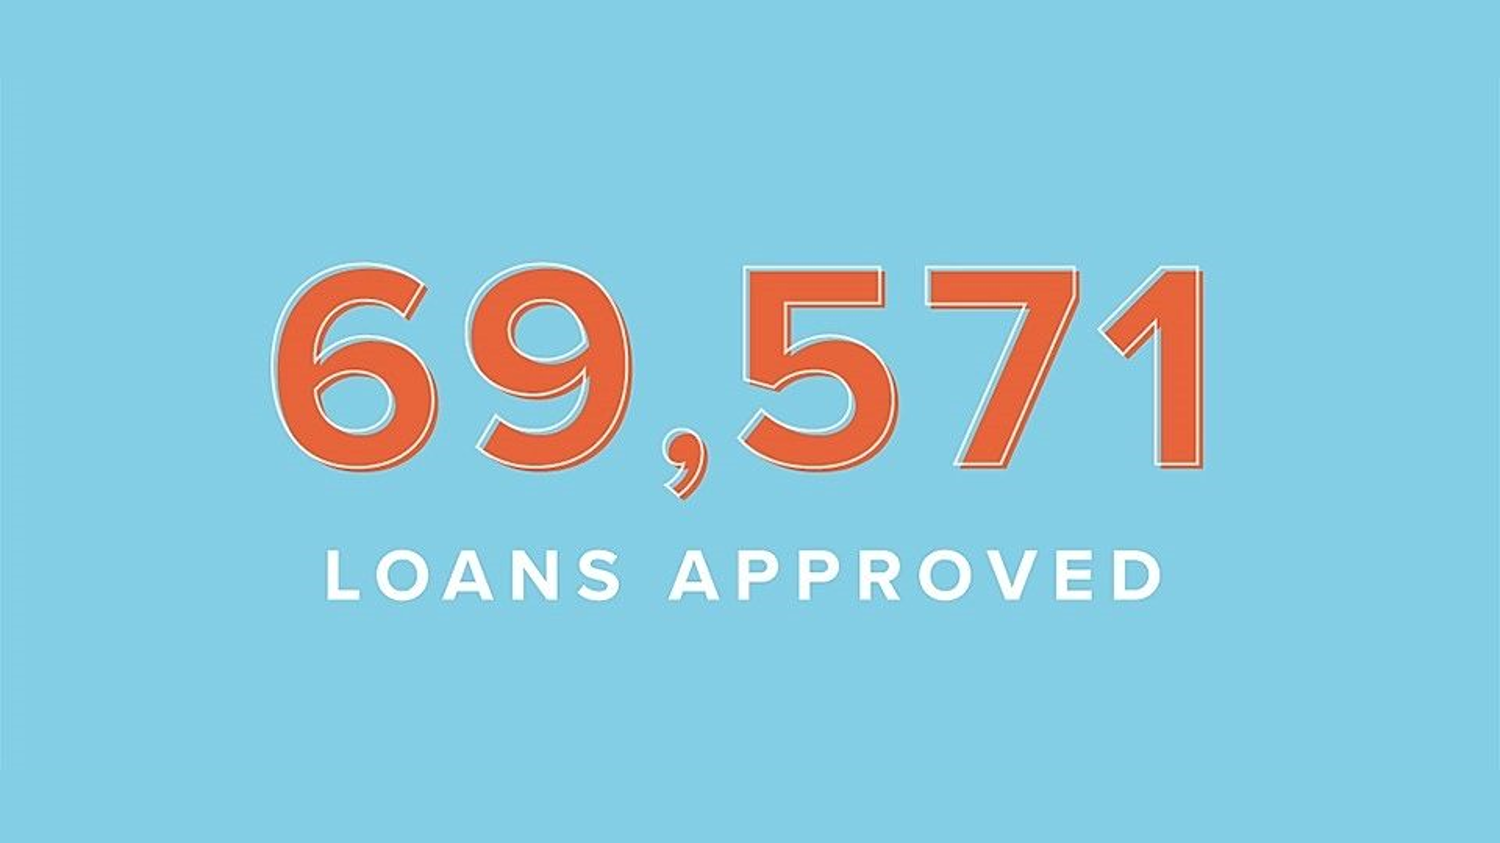 Bounce Back Loan Scheme – Over 69,000 loans approved in the first day